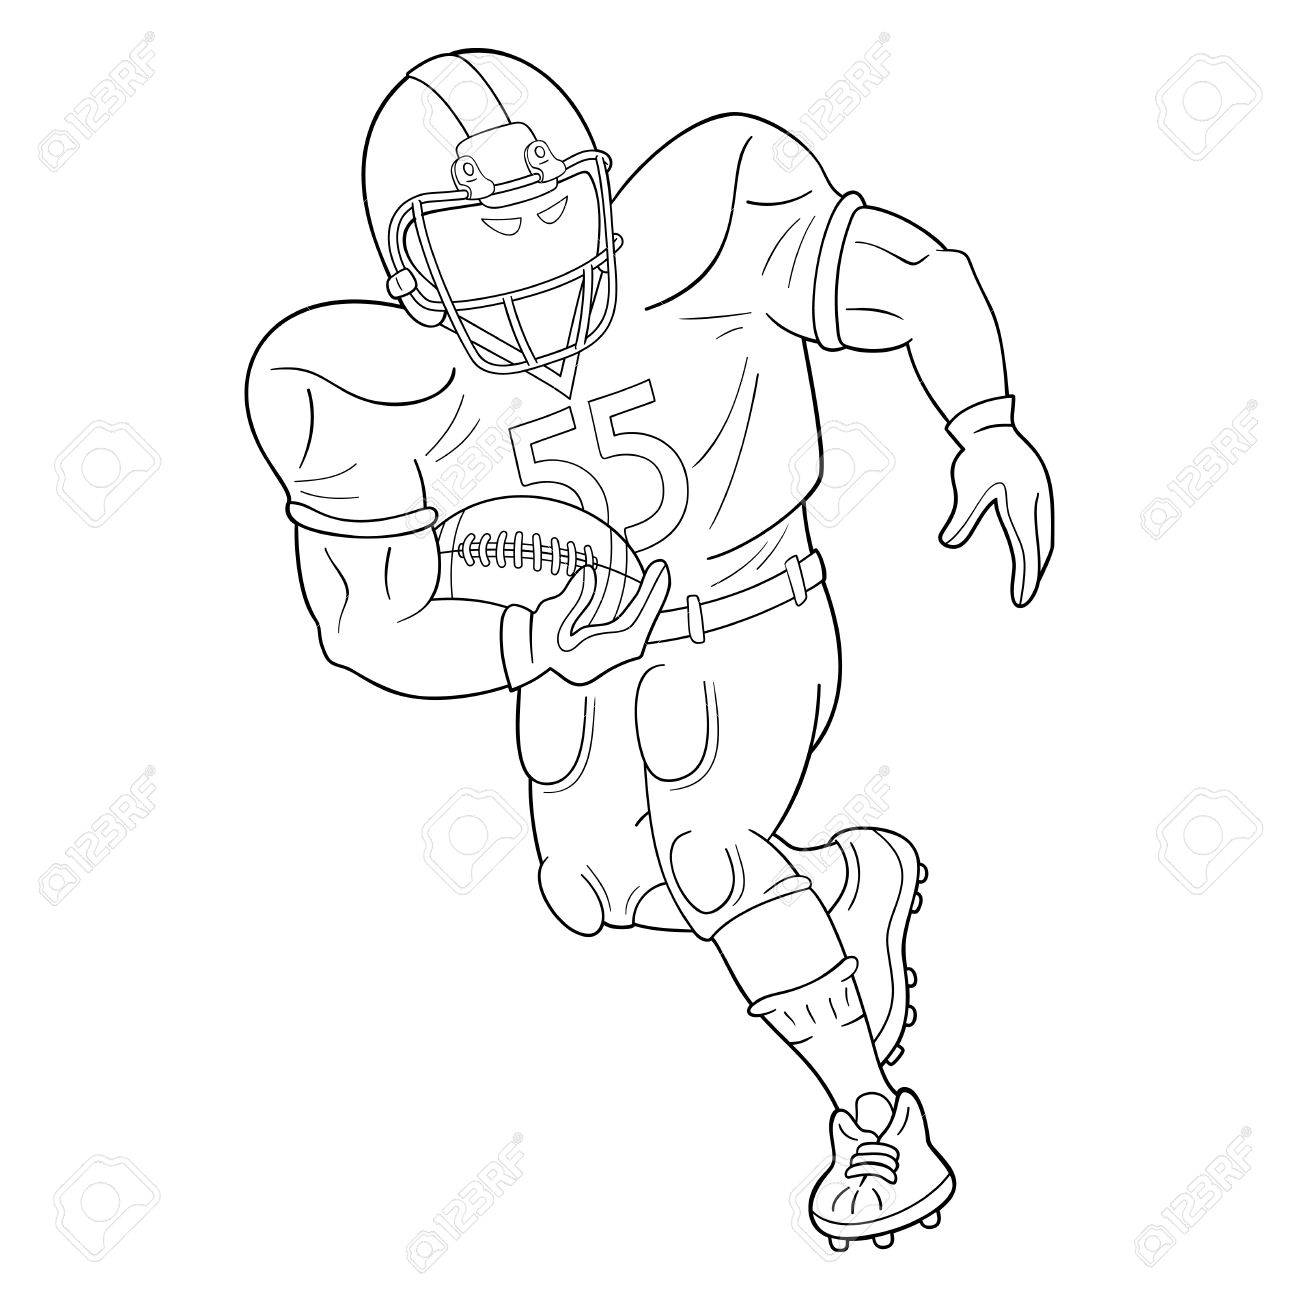 1299x1300 American Football Player With A Ball. Black And White Illustration